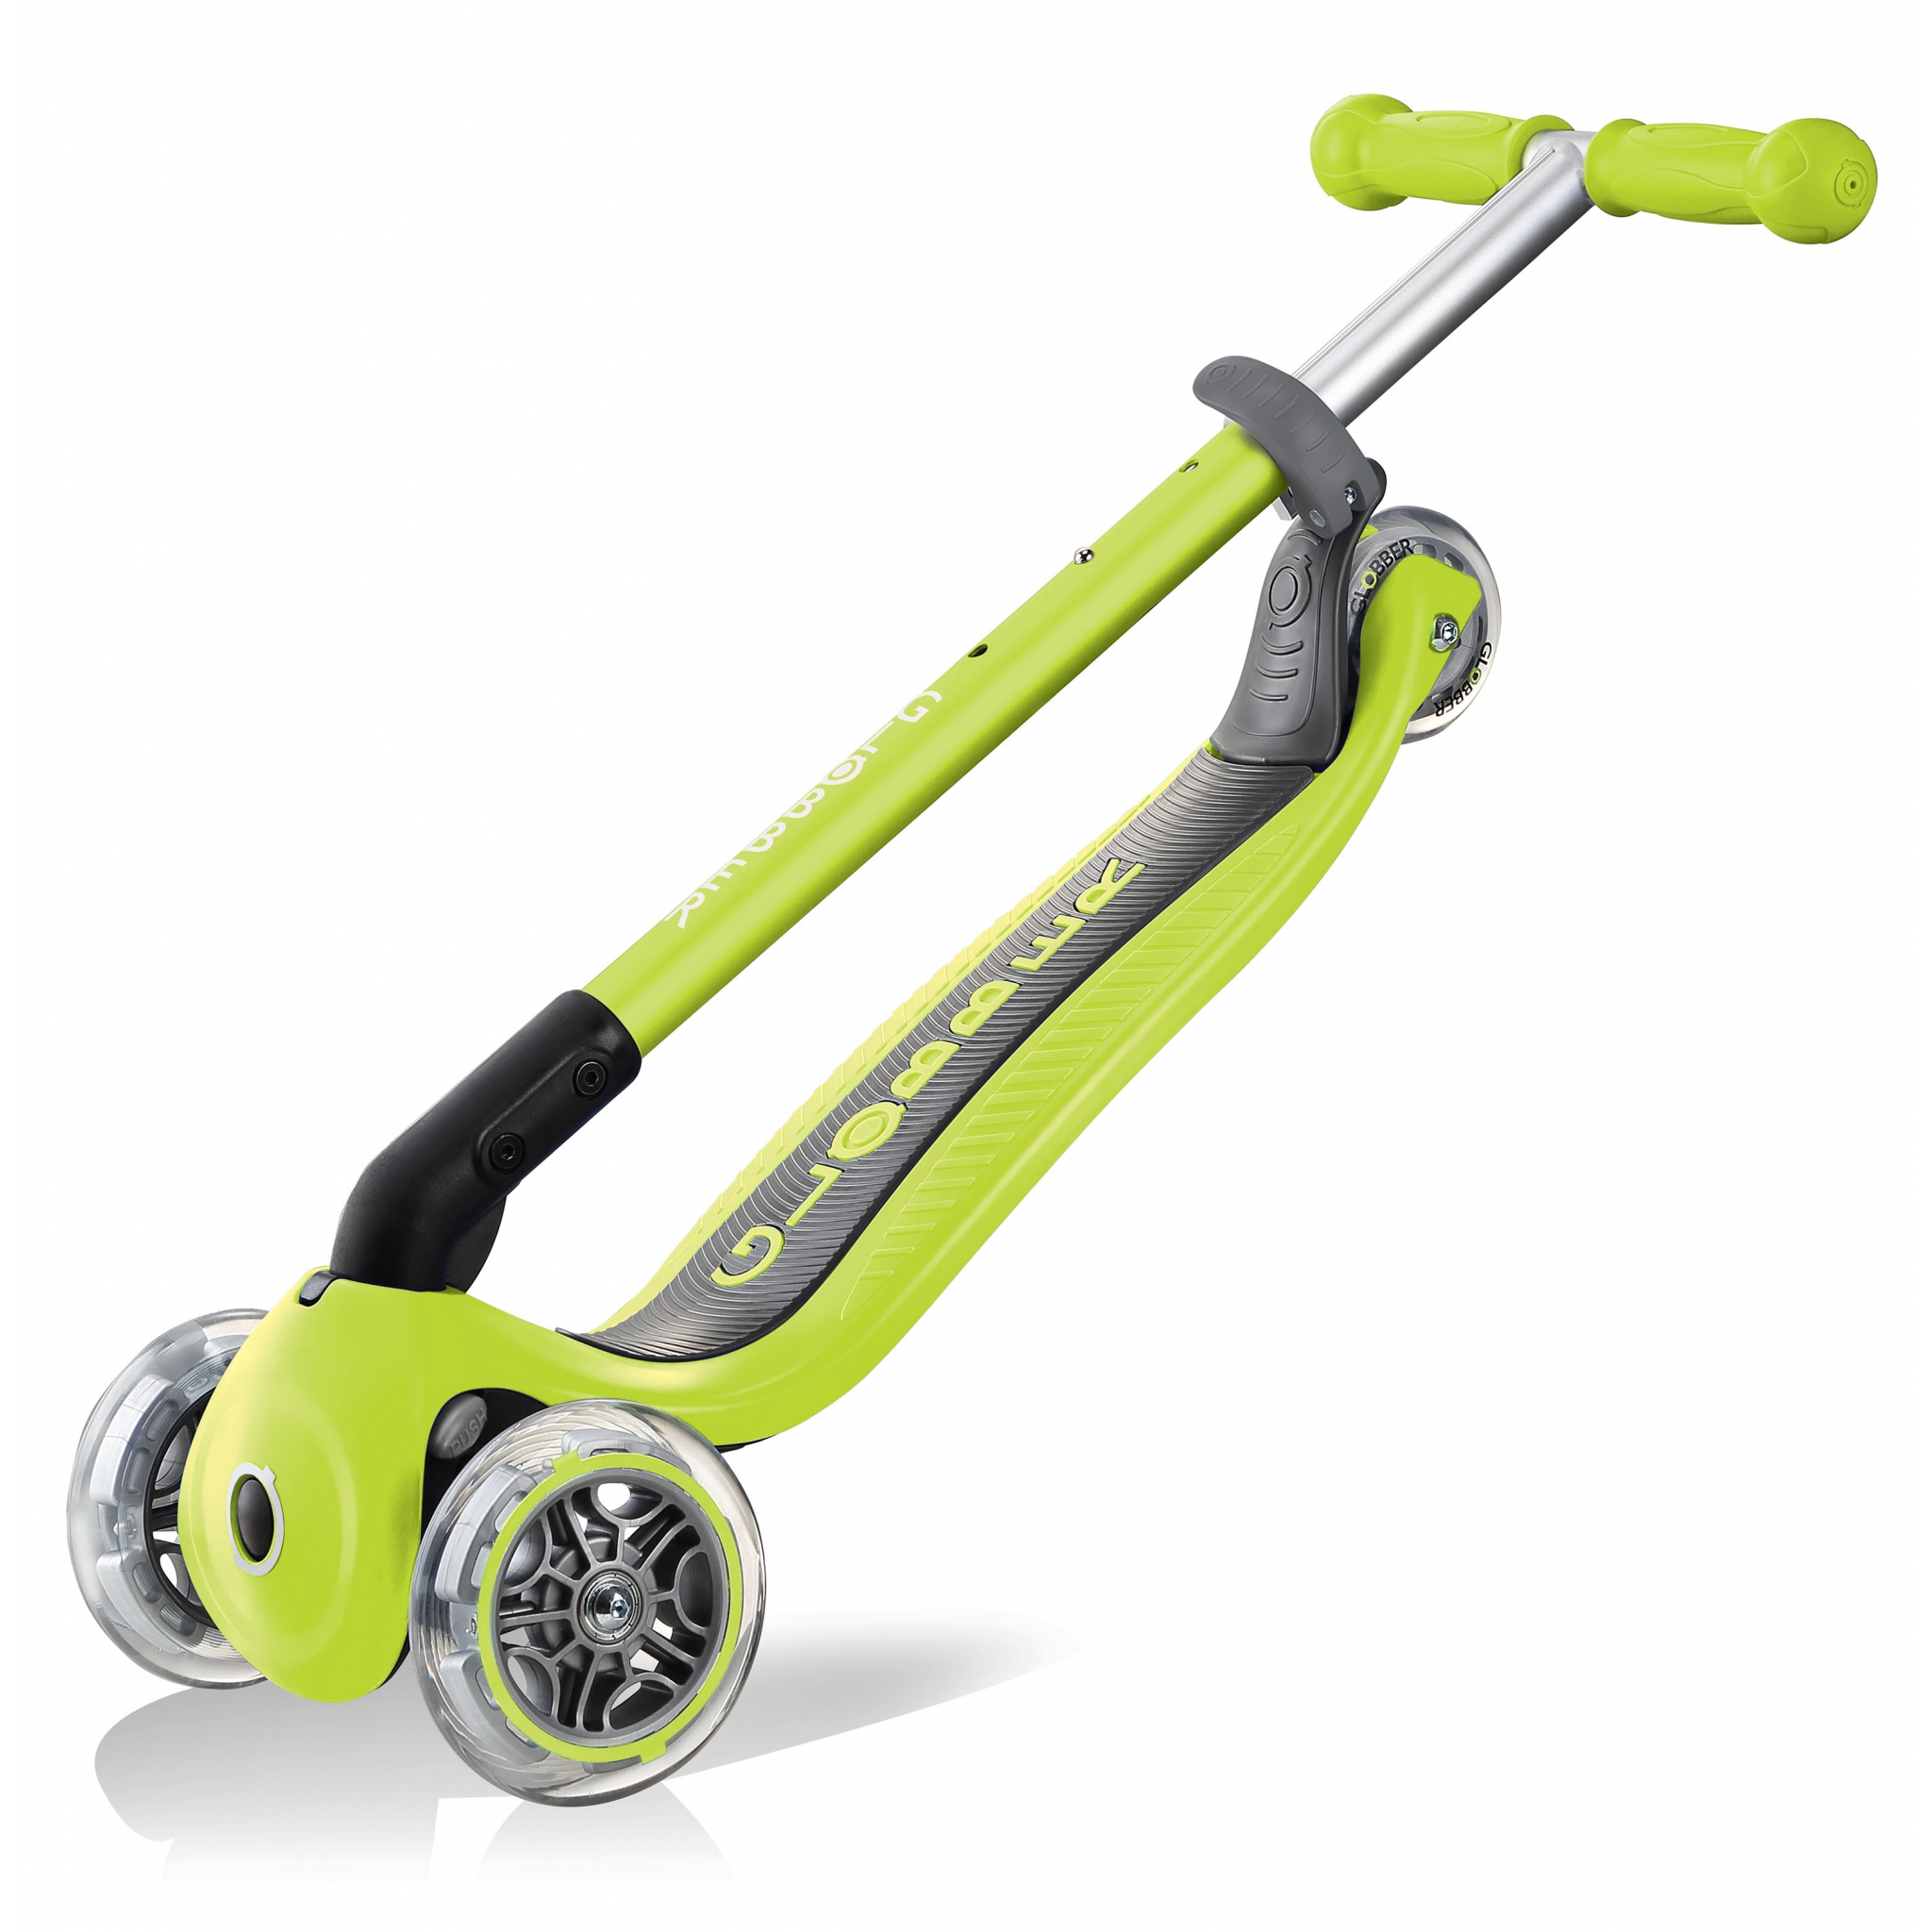 PRIMO-FOLDABLE-3-wheel-foldable-scooter-for-kids-trolley-mode-lime-green